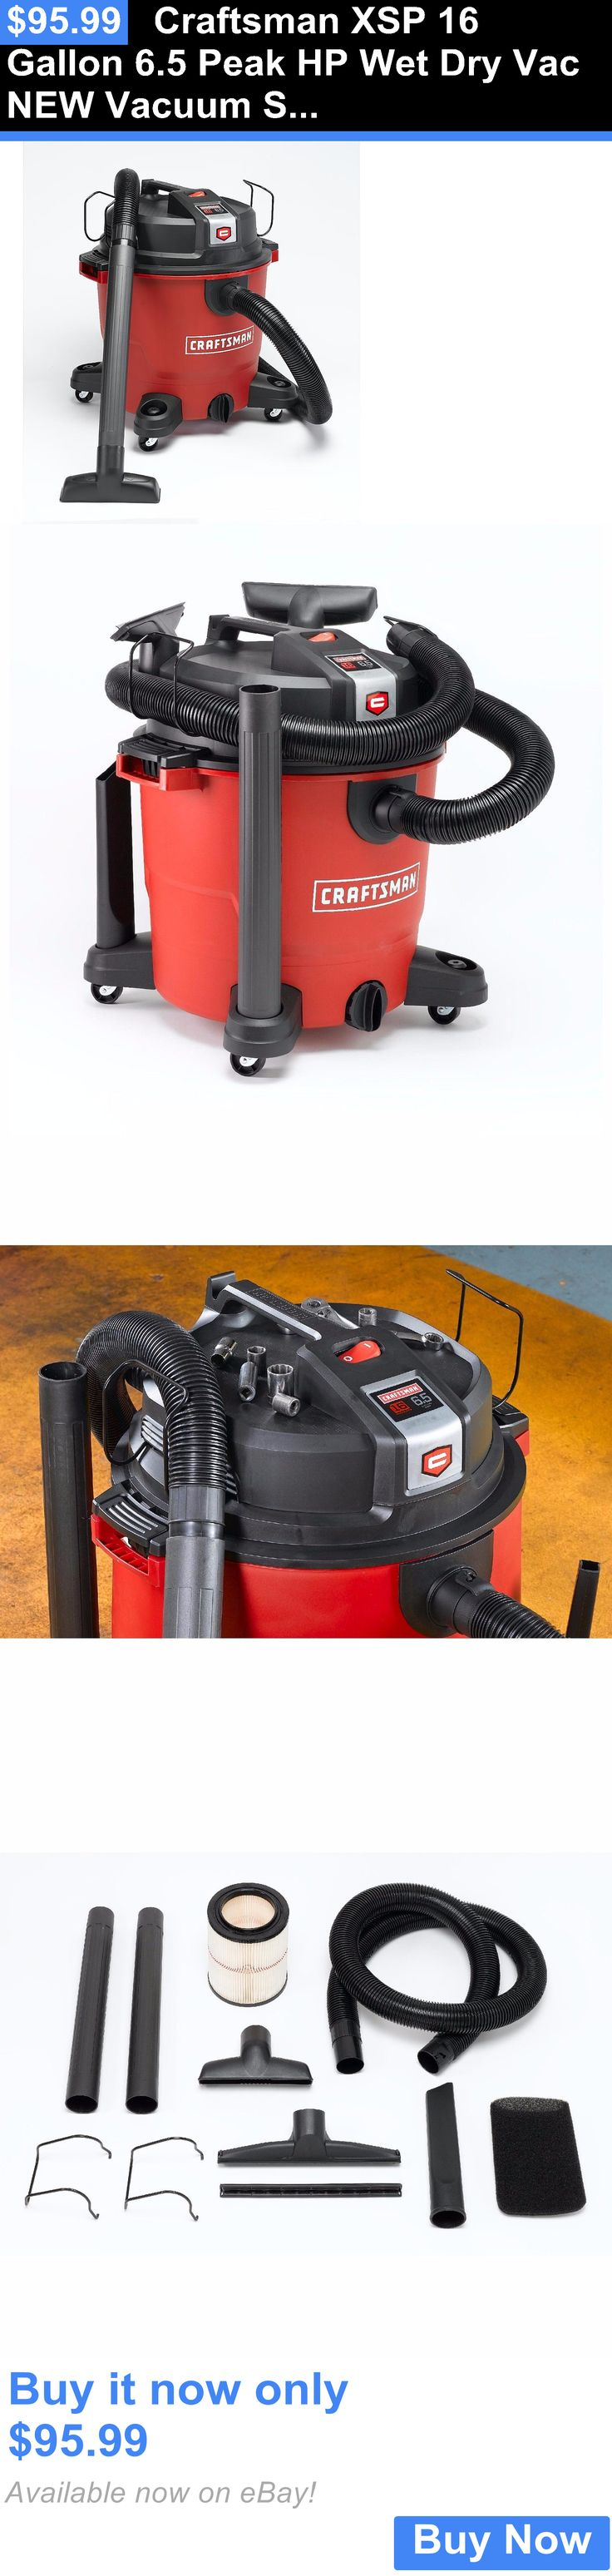 household items: Craftsman Xsp 16 Gallon 6.5 Peak Hp Wet Dry Vac New Vacuum Shop Cleaner BUY IT NOW ONLY: $95.99